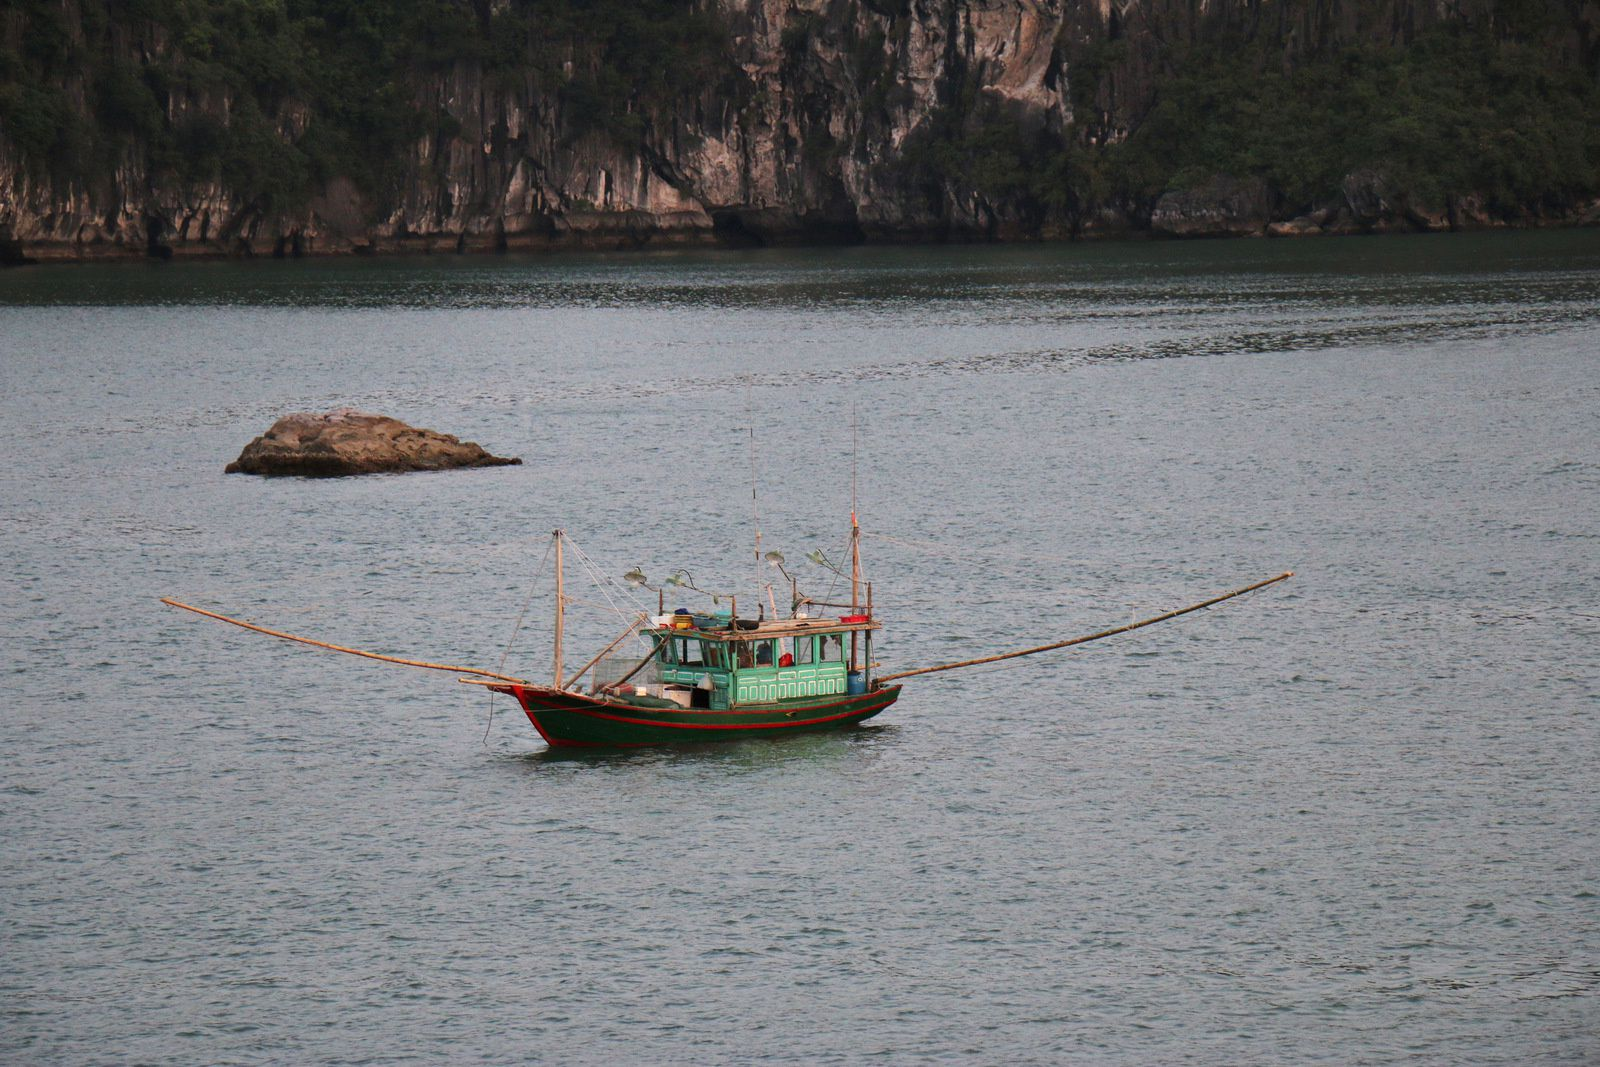 Embarcations légères, baie d'Ha Long (Vietnam)